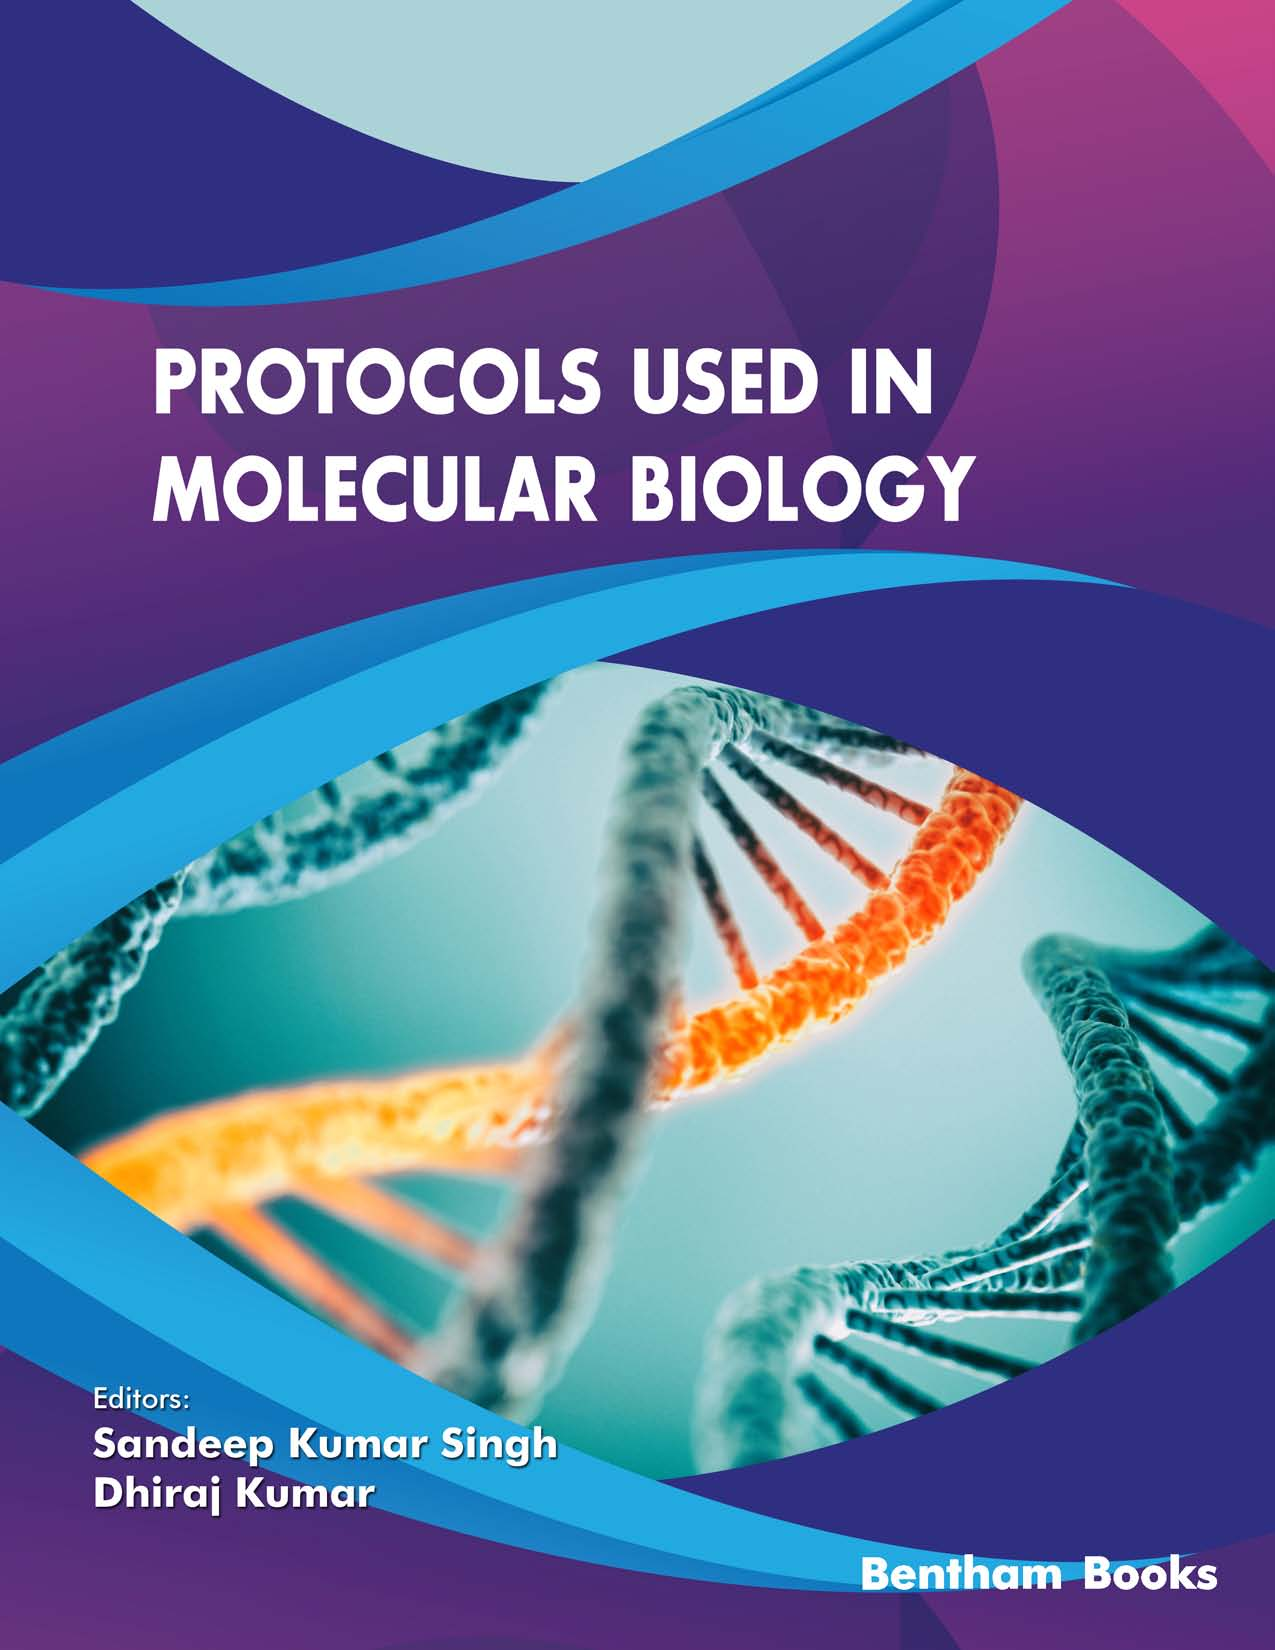 Protocols used in Molecular Biology